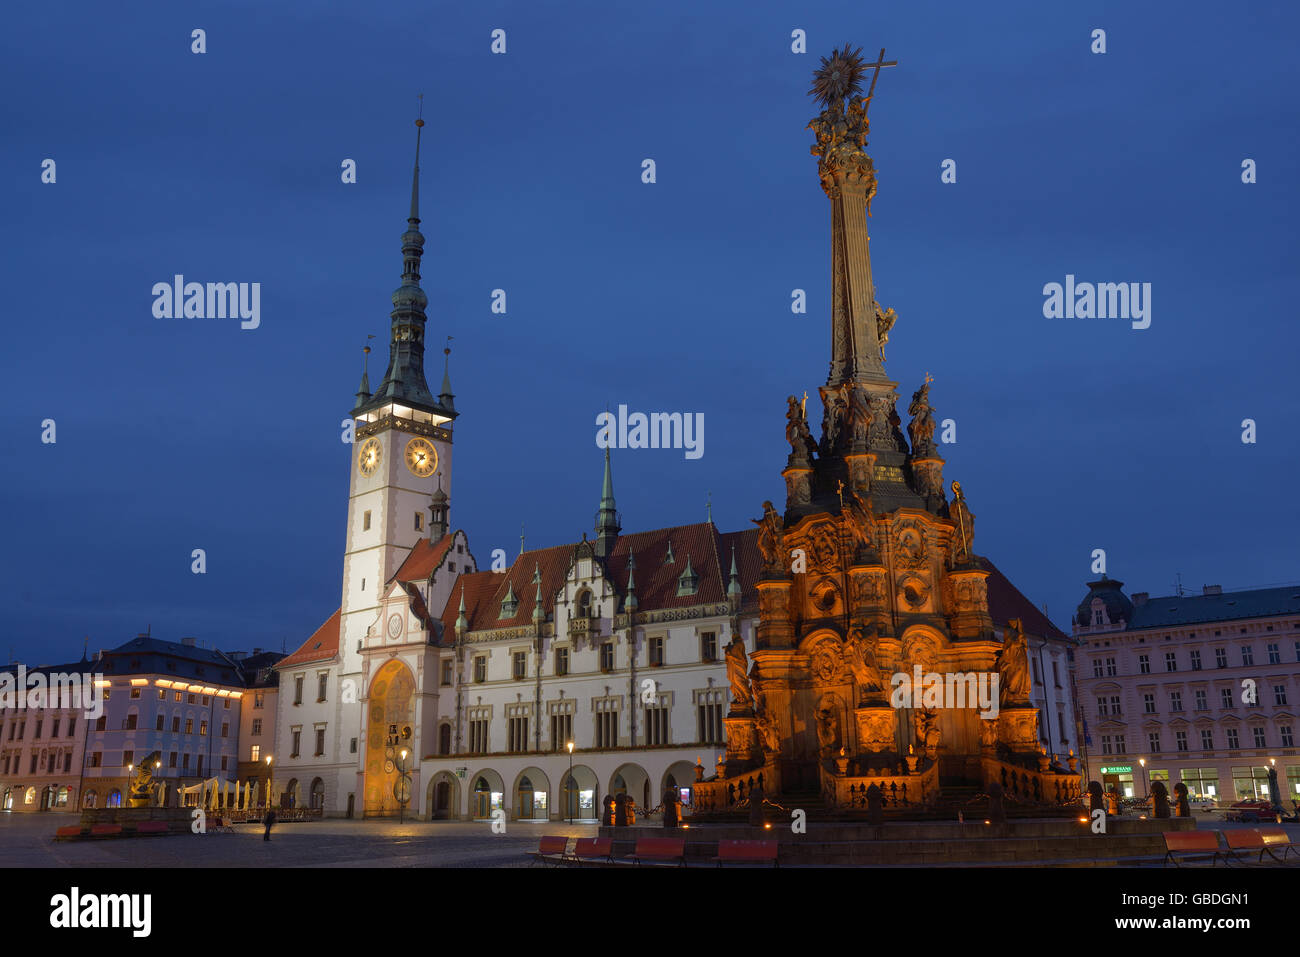 HOLY TRINITY COLUMN & TOWN HALL AT NIGHT. Olomouc, Moravia, Czech Republic. - Stock Image